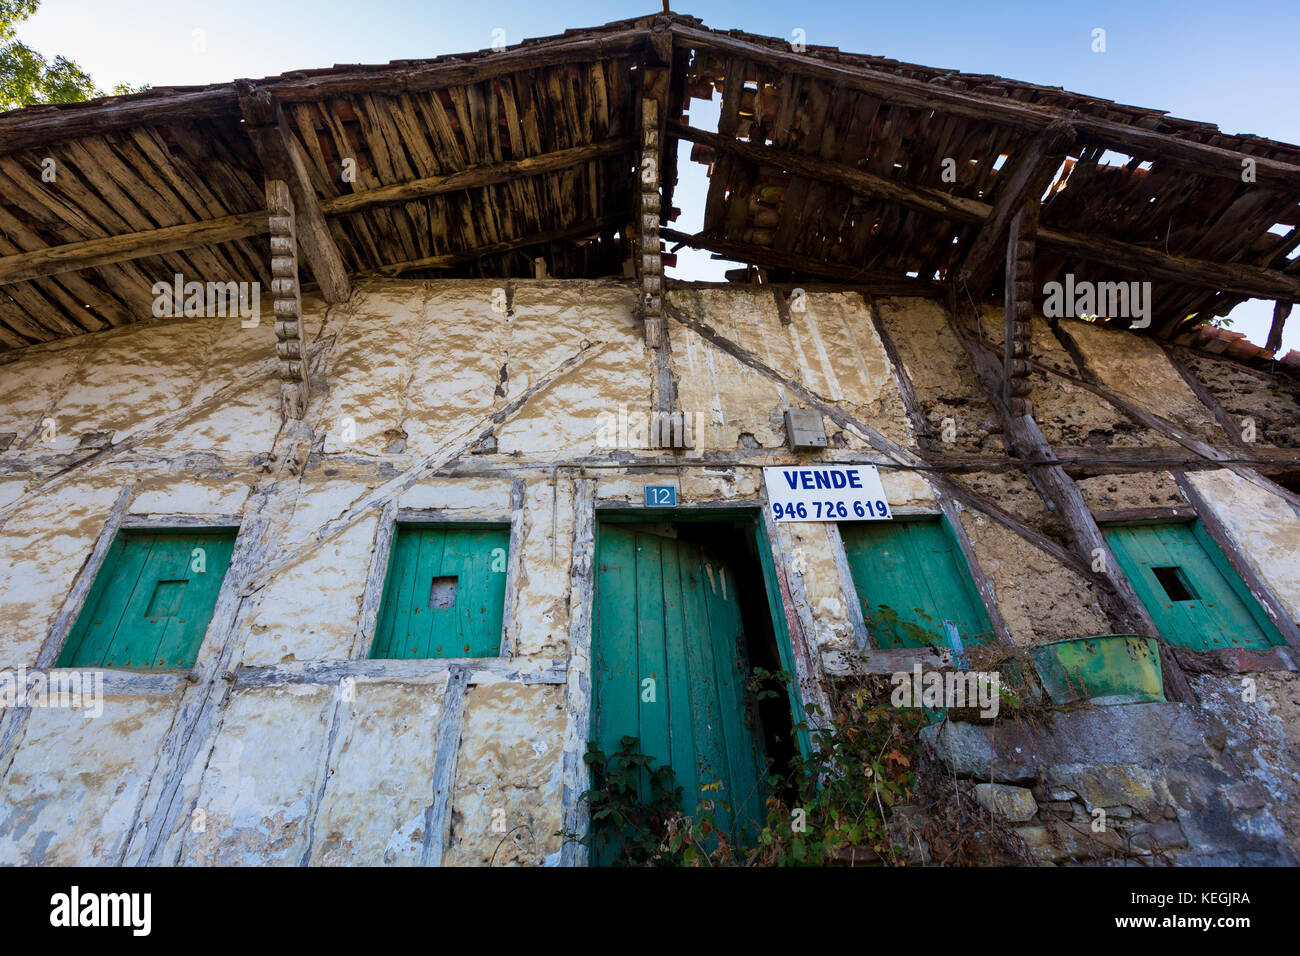 Traditional Basque house for sale in the Biskaia Basque region of Northern Spain - Stock Image